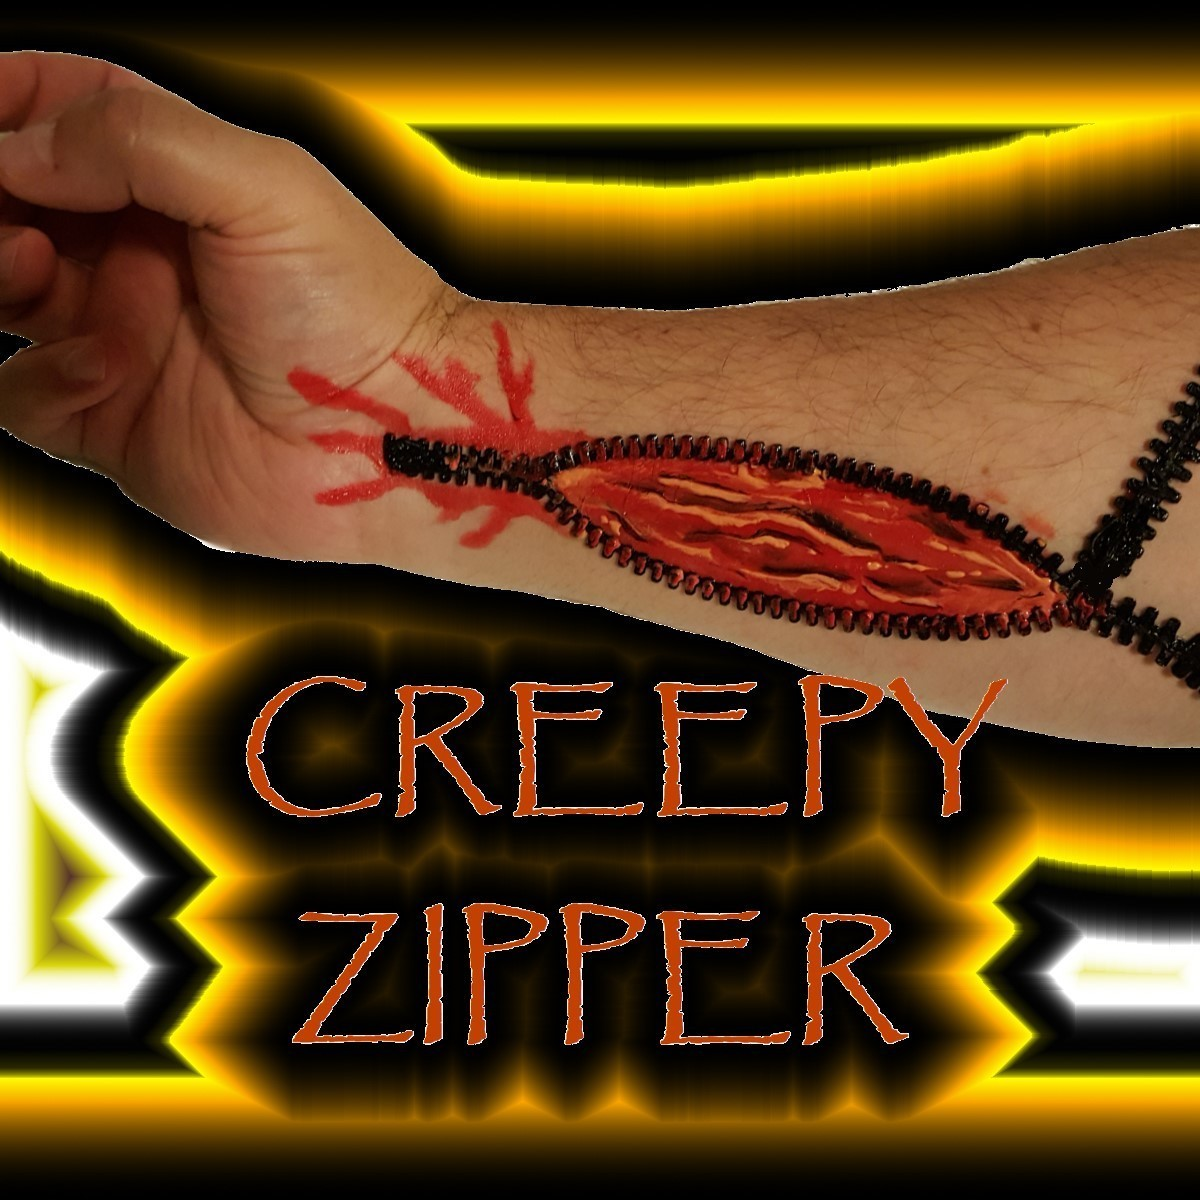 CREEPY ZIPPERxcf.jpg Download free STL file CREEPY ZIPPER SET • 3D print template, DJER